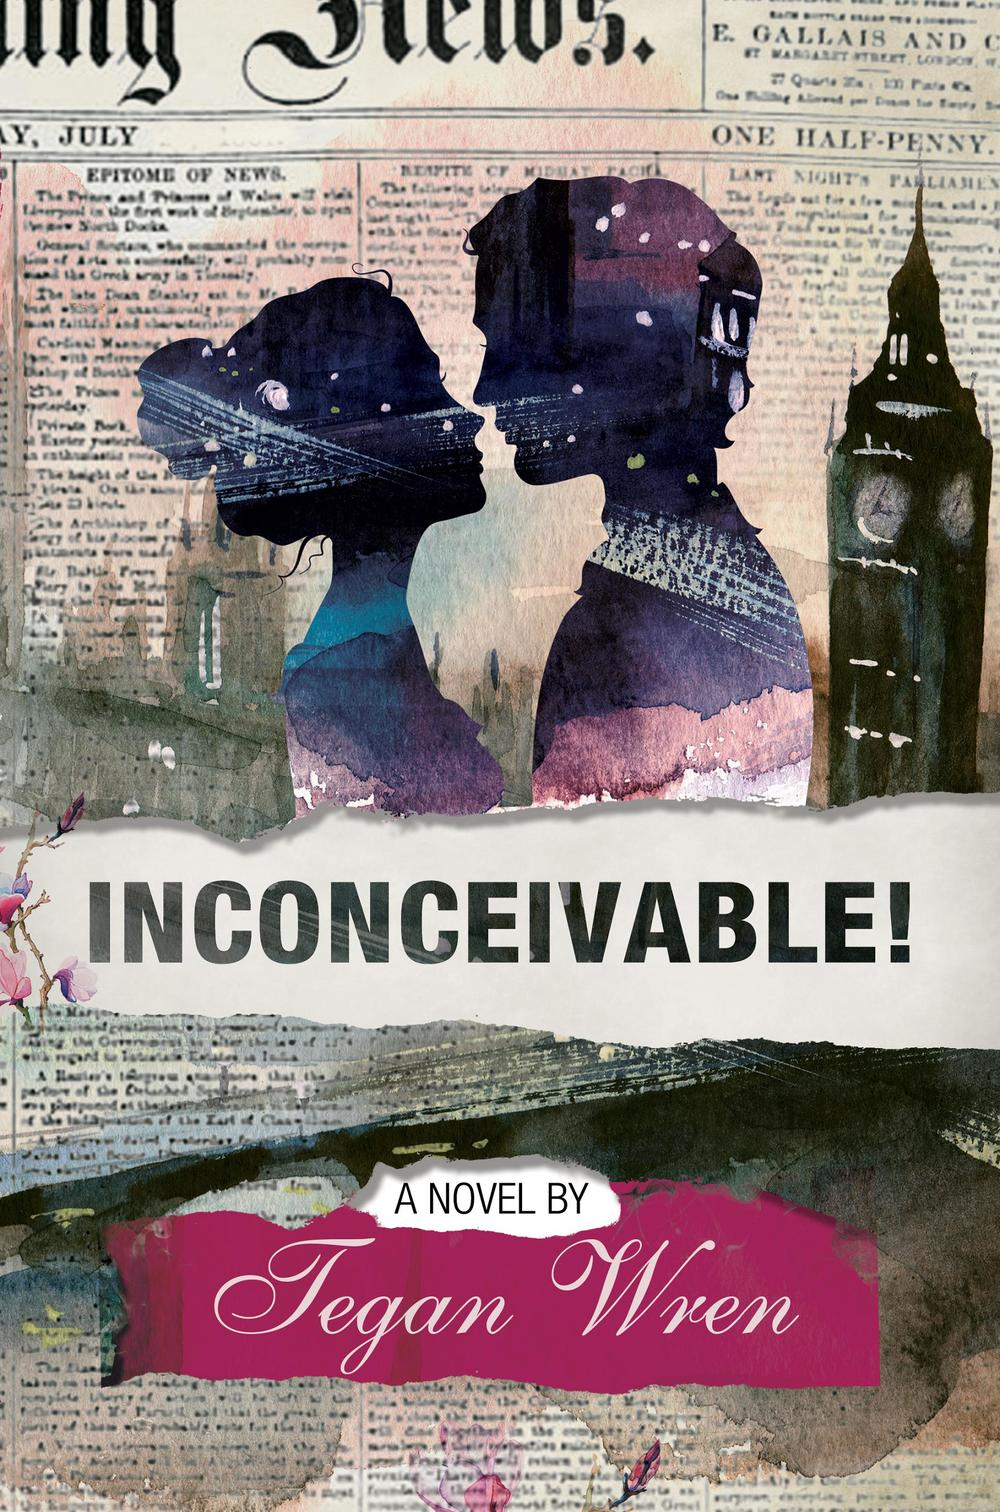 """INCONCEIVABLE! blurb A popular, young royal couple can't produce an heir? INCONCEIVABLE! When Ozarks native Hatty goes """"whole hog"""" during karaoke, she catches the eye of Prince John. He isn't what she expects the heir to a small European nation to be: he's affable, witty, and isn't put off by her tell-it-like-it-is demeanor. Their flirtation should be short lived, but a force stronger than fate—Hatty's newspaper editor—assigns her to cover the royals. After spending time together, she and John soon begin dating, and Hatty finds herself making headlines instead of writing them. But challenges loom that are even more complicated than figuring out how to mesh Hatty's journalism career with life at Belvoir Palace. Hatty and John soon find themselves embroiled in an unusual sex scandal: they can't produce an heir. Tabloids dub Hatty a """"Barren-ess,"""" and the royals become irate. Hatty politely tells them to shove it. But beneath her confident exterior, she struggles to cope with a heartbreak that invades her most intimate moments with John. Pressured to choose between invasive medical procedures and abandoning John's claim to the throne, the couple feels trapped until a trip to Ethiopia shows them happy endings sometimes arrive long after saying """"I do."""" Advance praise for INCONCEIVABLE! · """"As someone who has experienced infertility, I empathize with Hatty's struggles. Wren beautifully illuminates the joy, grief, and adventure of creating a family against all odds in this heart warming and impactful story."""" America Olivo Campbell, actress: DeGrassi: The Next Generation, Chicago PD, Mission Impossible 5. Spokesperson for Baby Quest Foundation · """"I found the insights into infertility invaluable and sensitive."""" -Marnie Neve, Board Member, Baby Quest Foundation · """"Not only was this a very well written and entertaining story (I flew through it), but I feel it's also a very important story."""" -Meredith Tate, author of Missing Pieces · """"Tegan Wren's debut novel is by turn funny, he"""